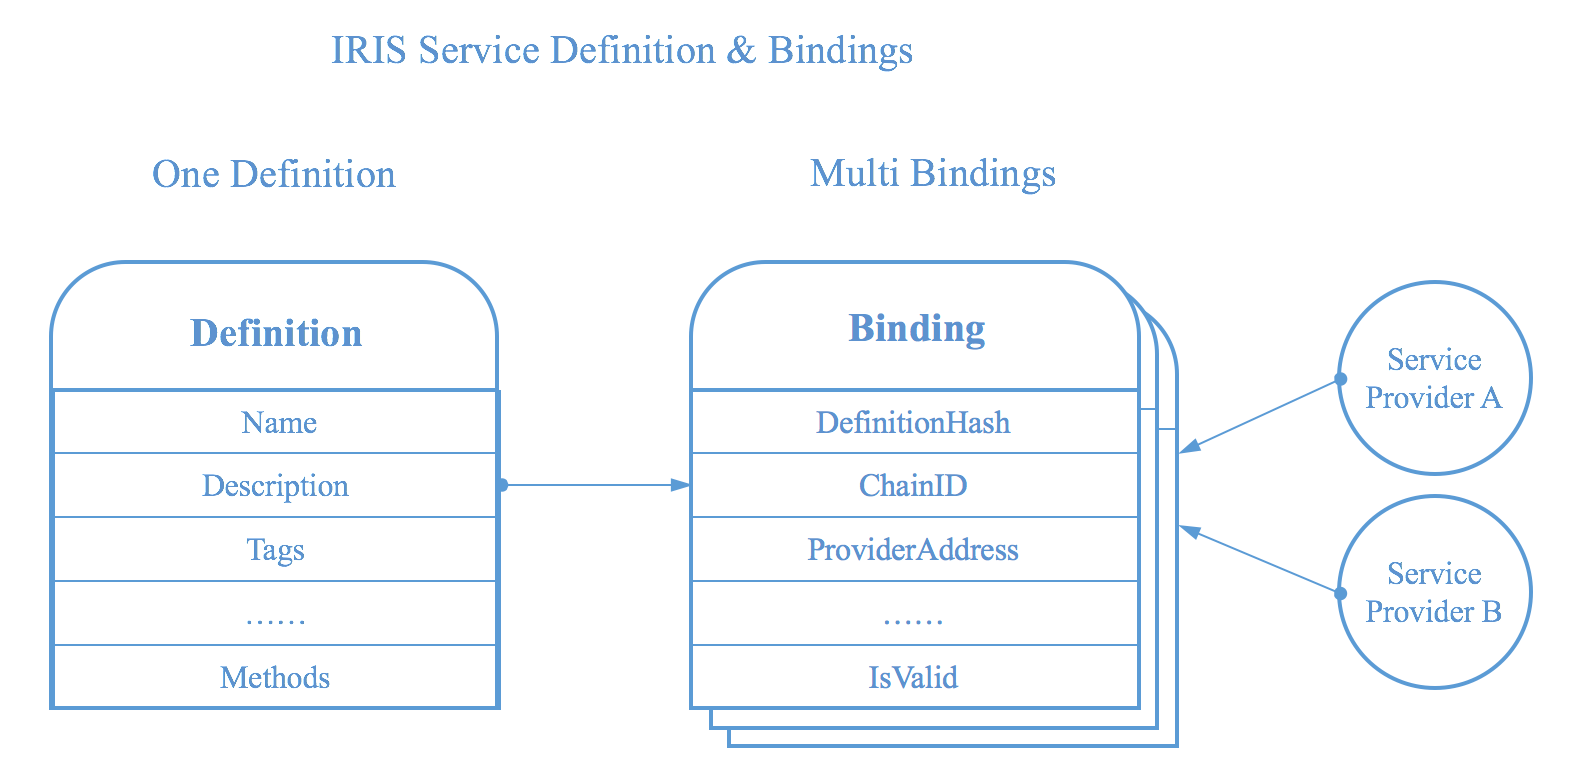 Figure of iService Definition and Bindings